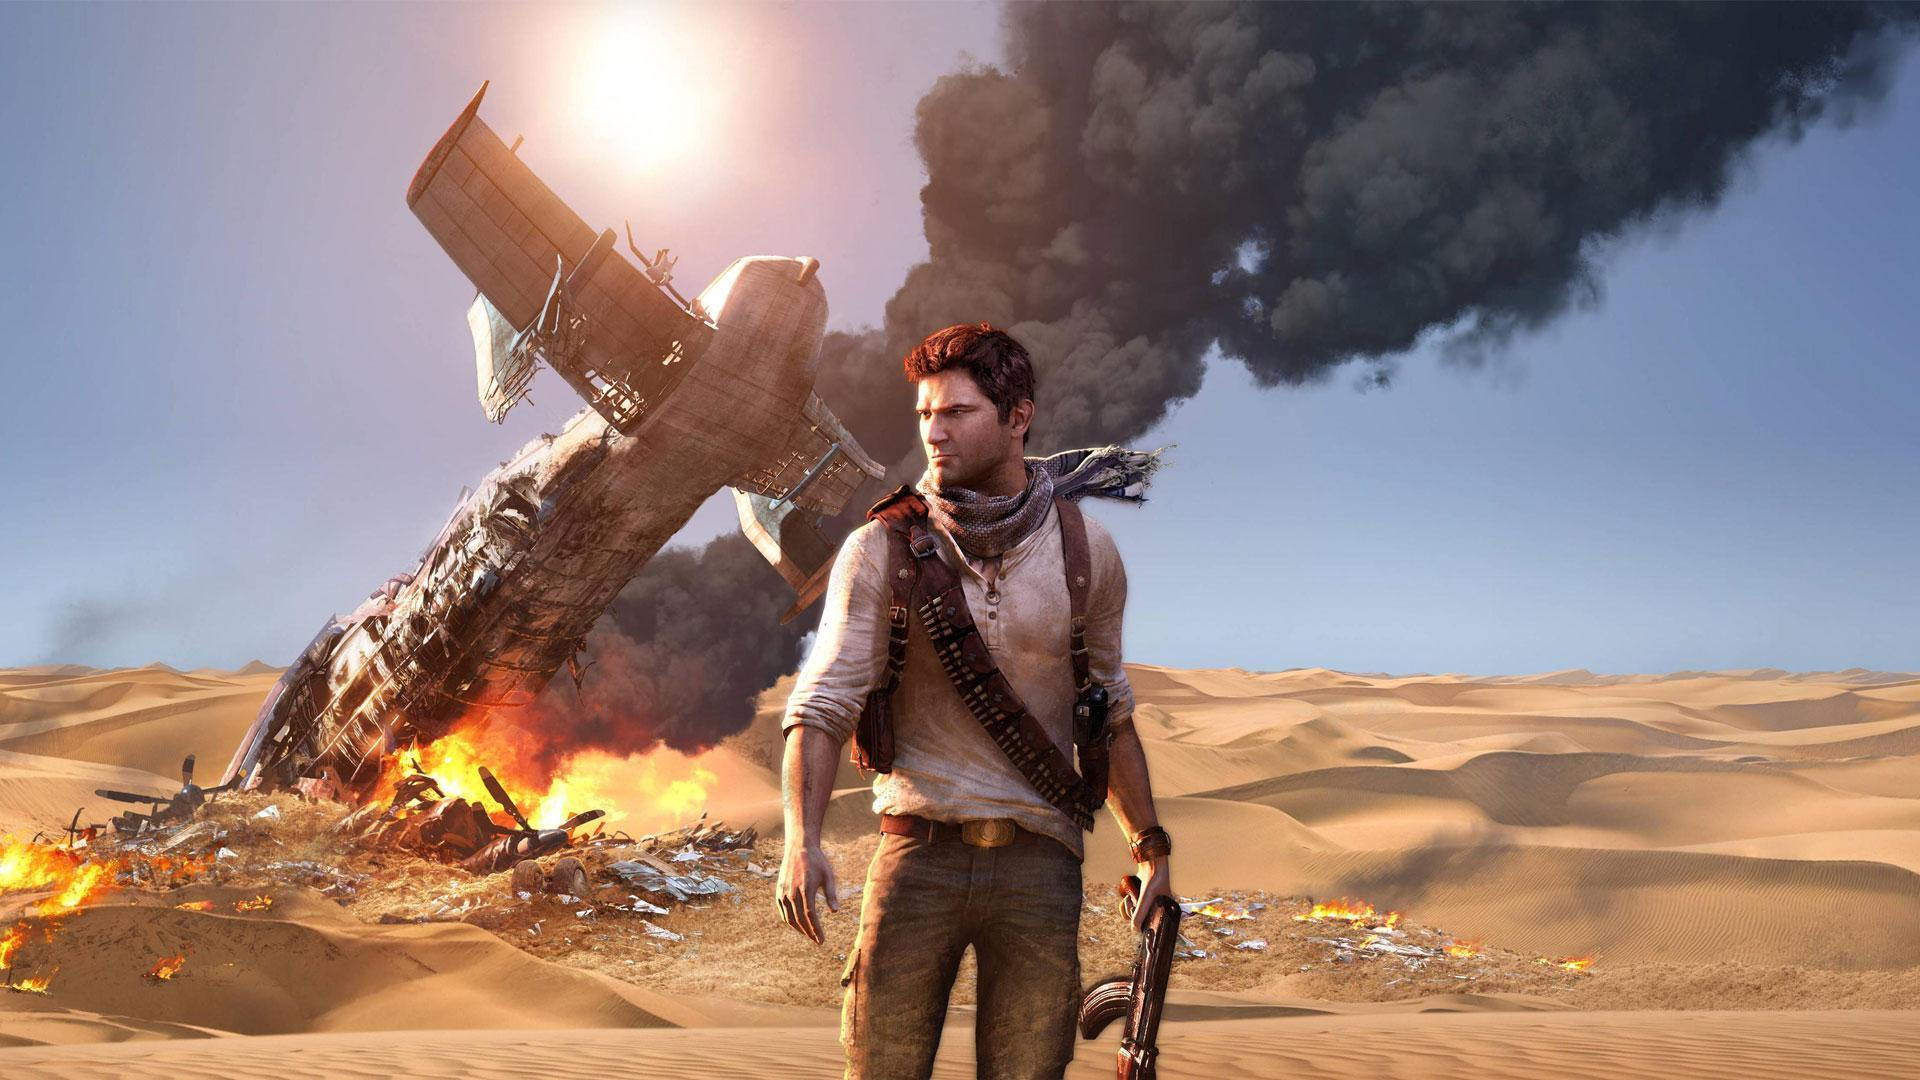 Uncharted 3 Drakes Deception Wallpapers In HD